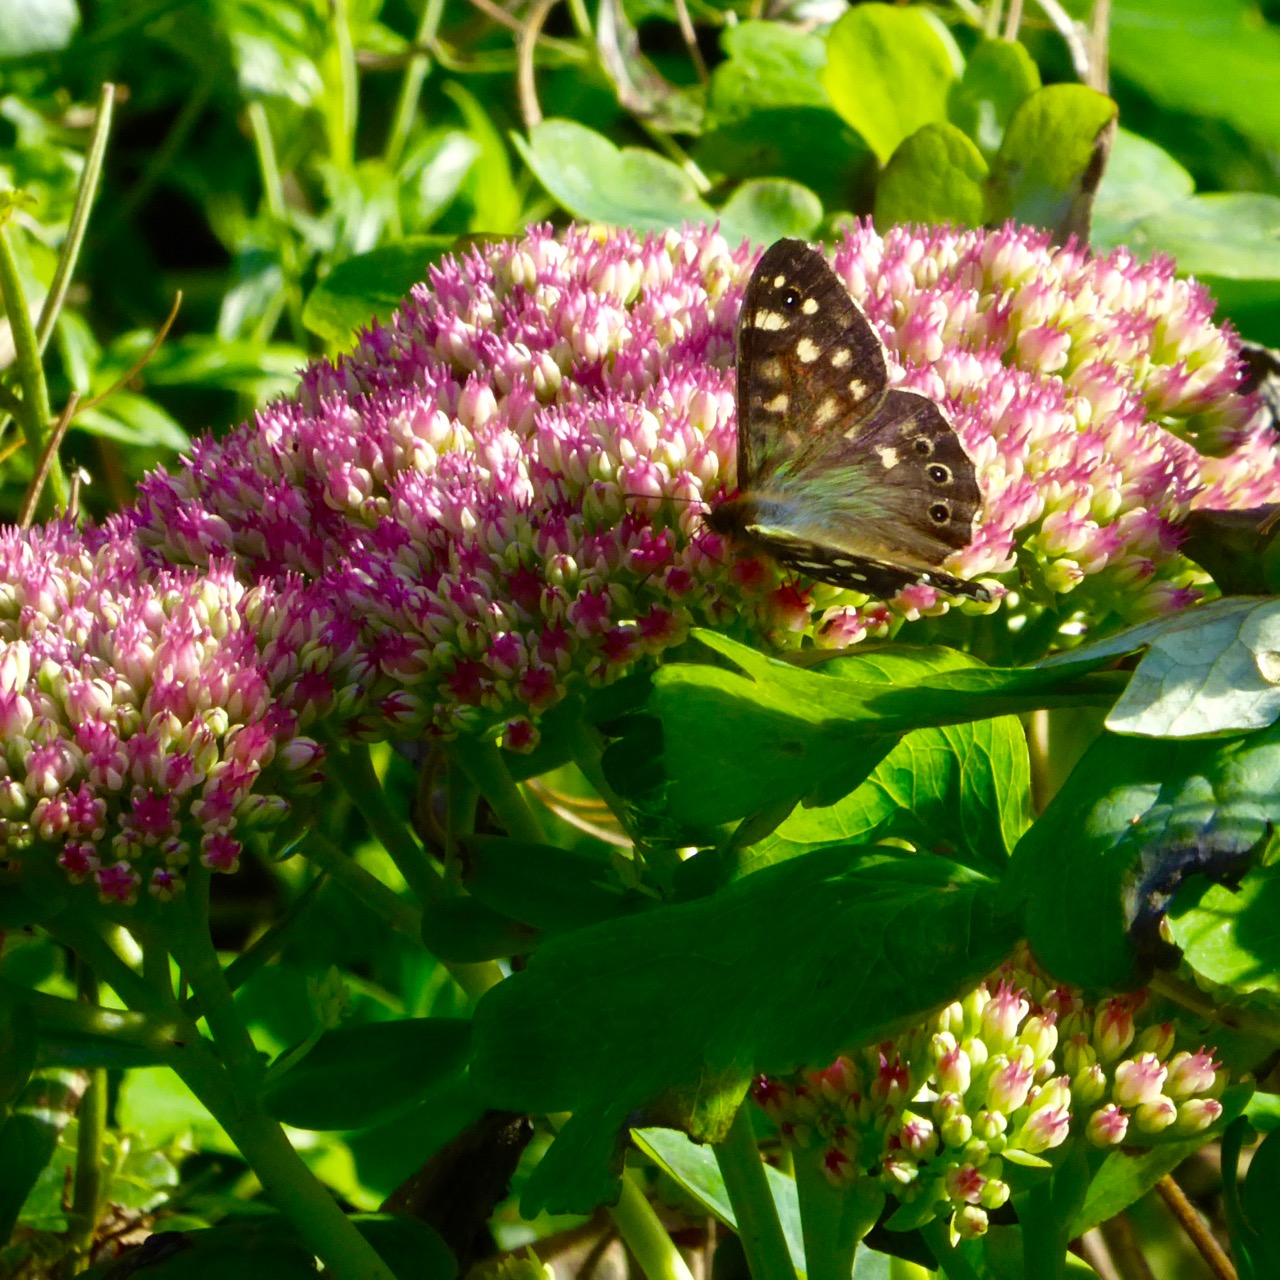 Speckled Wood Butterfly on sedum